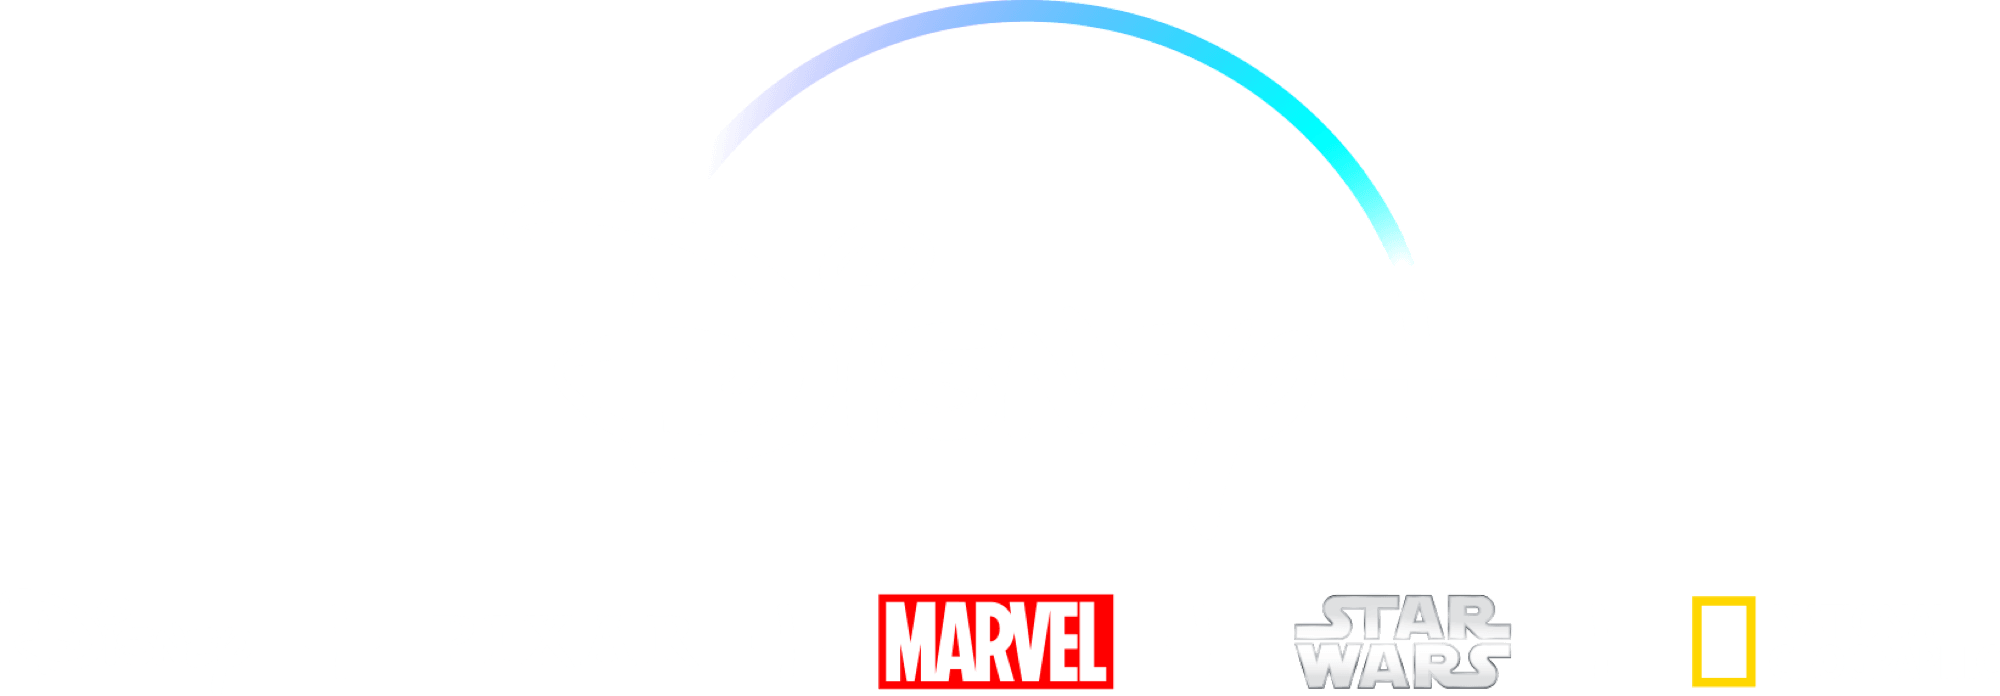 More Information at Disney+